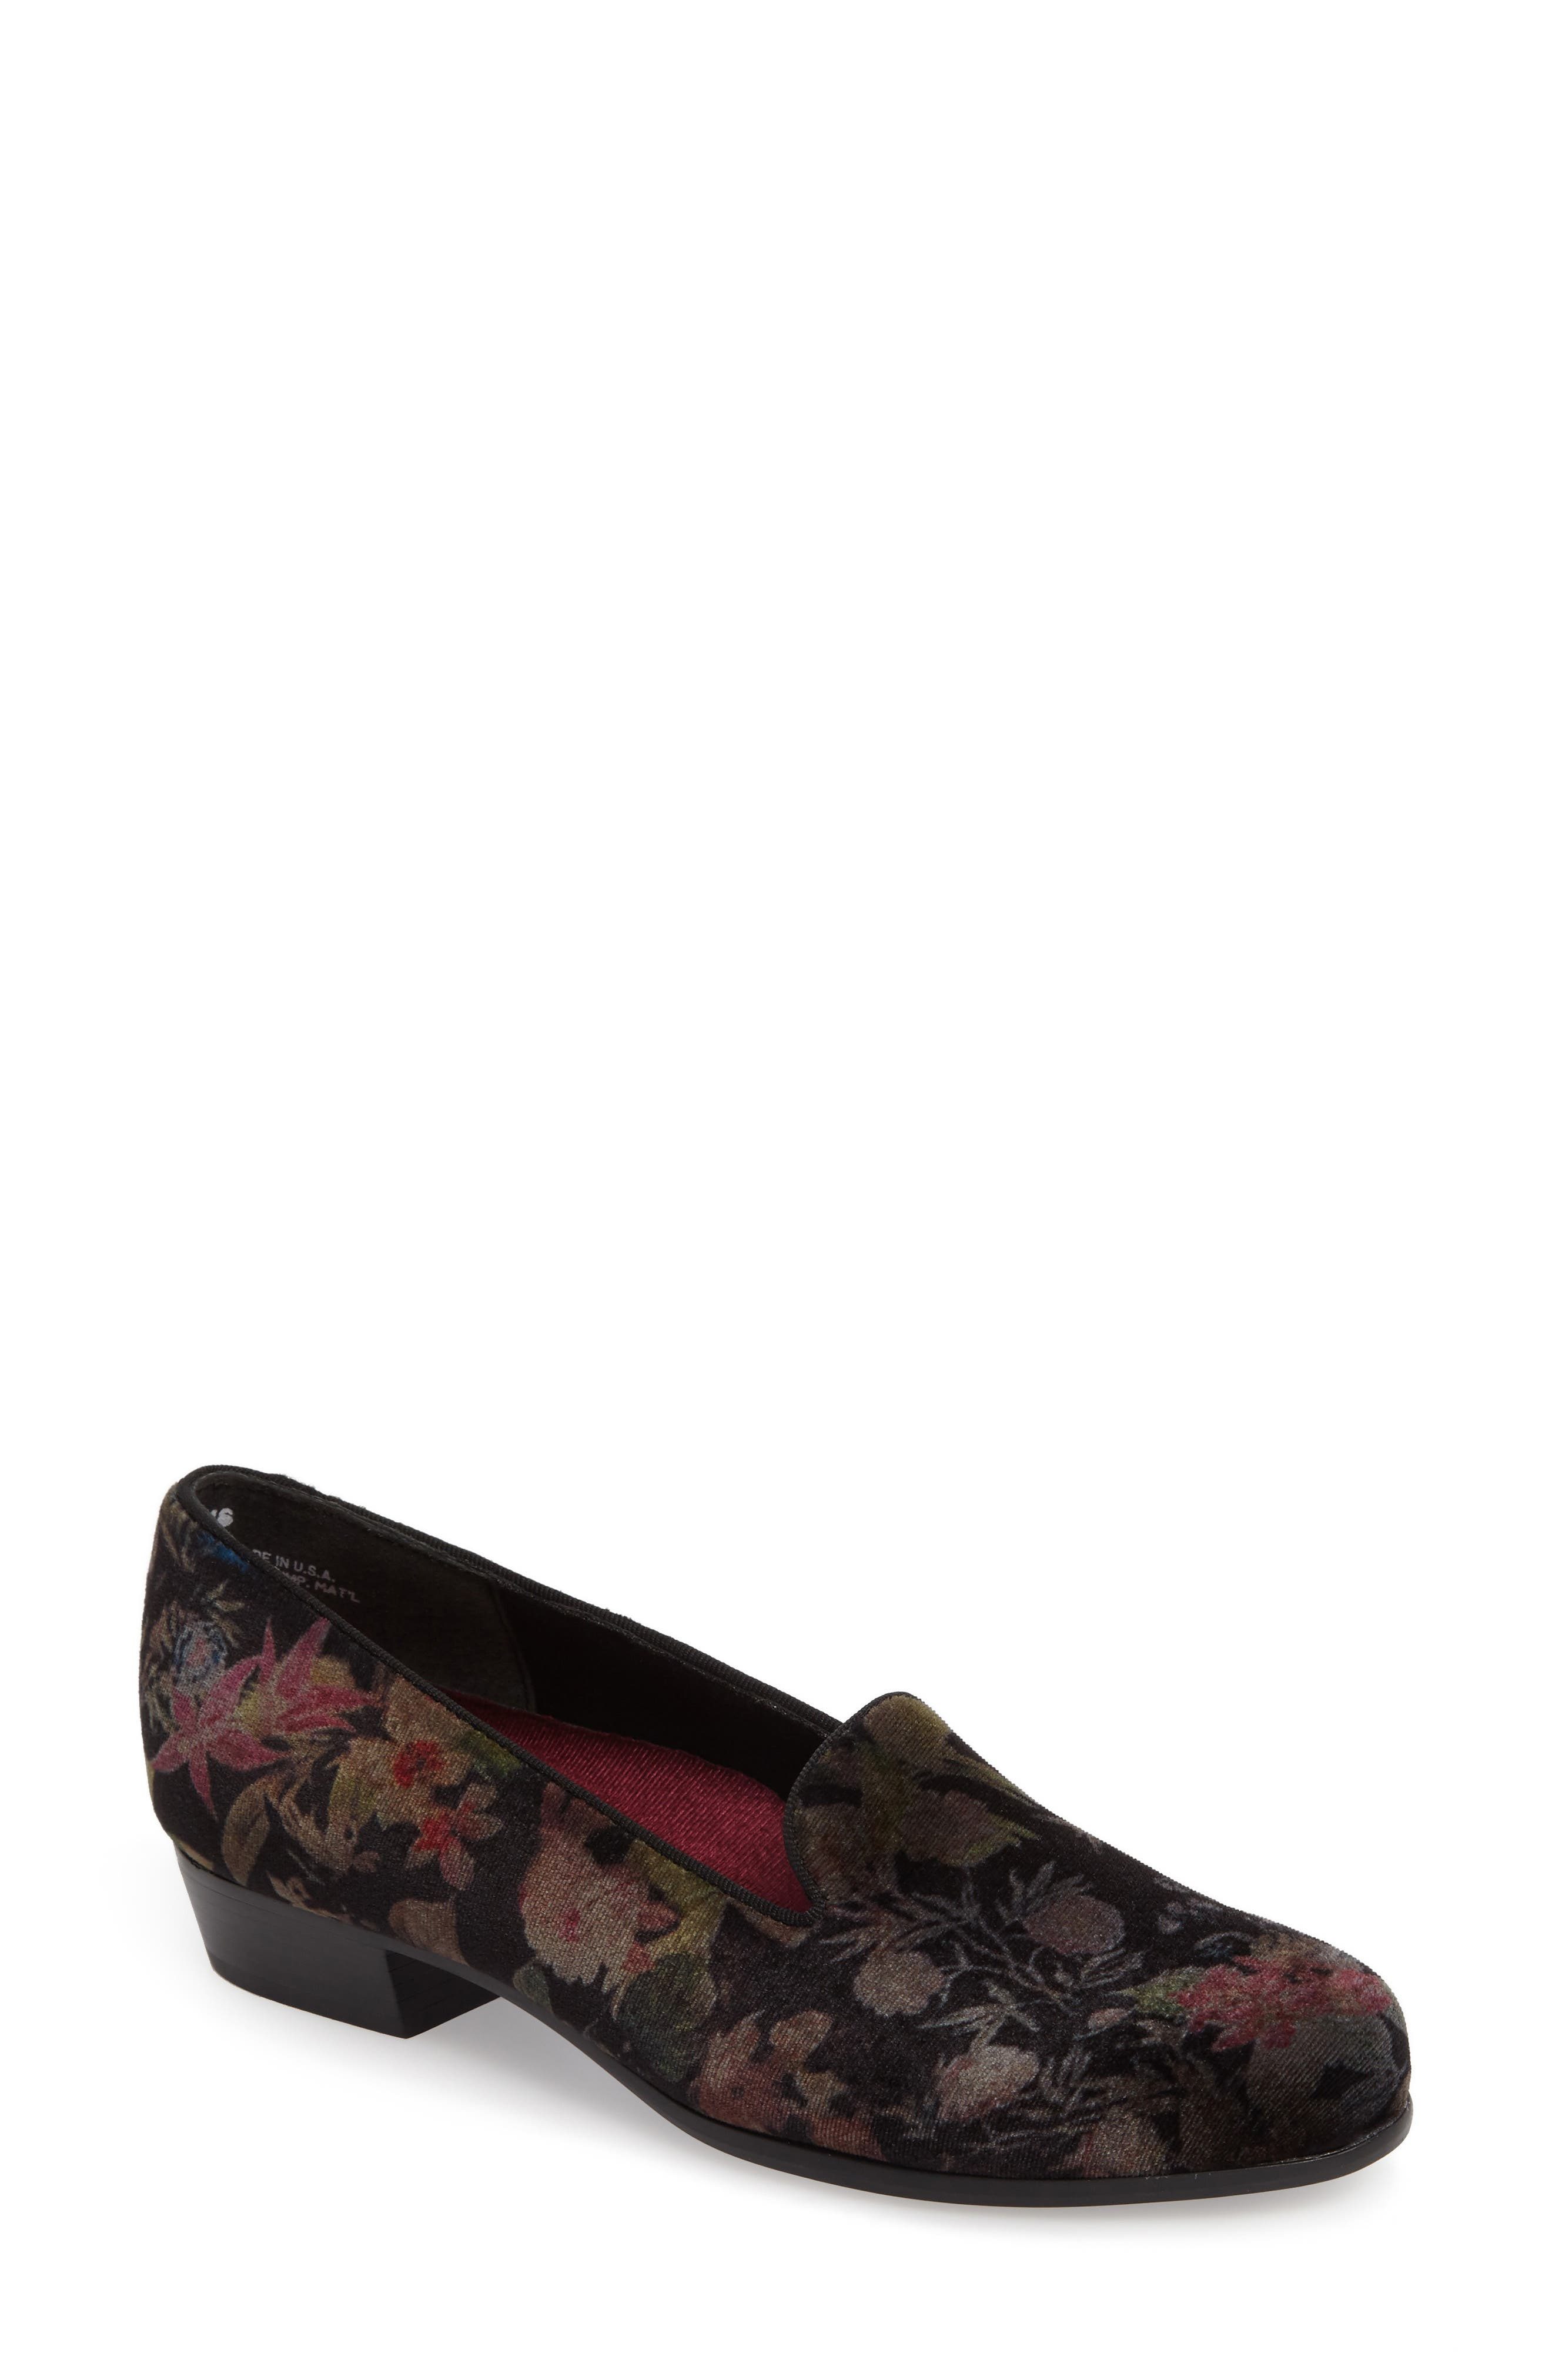 Munro Cerise Smoking Slipper Loafer (Women)